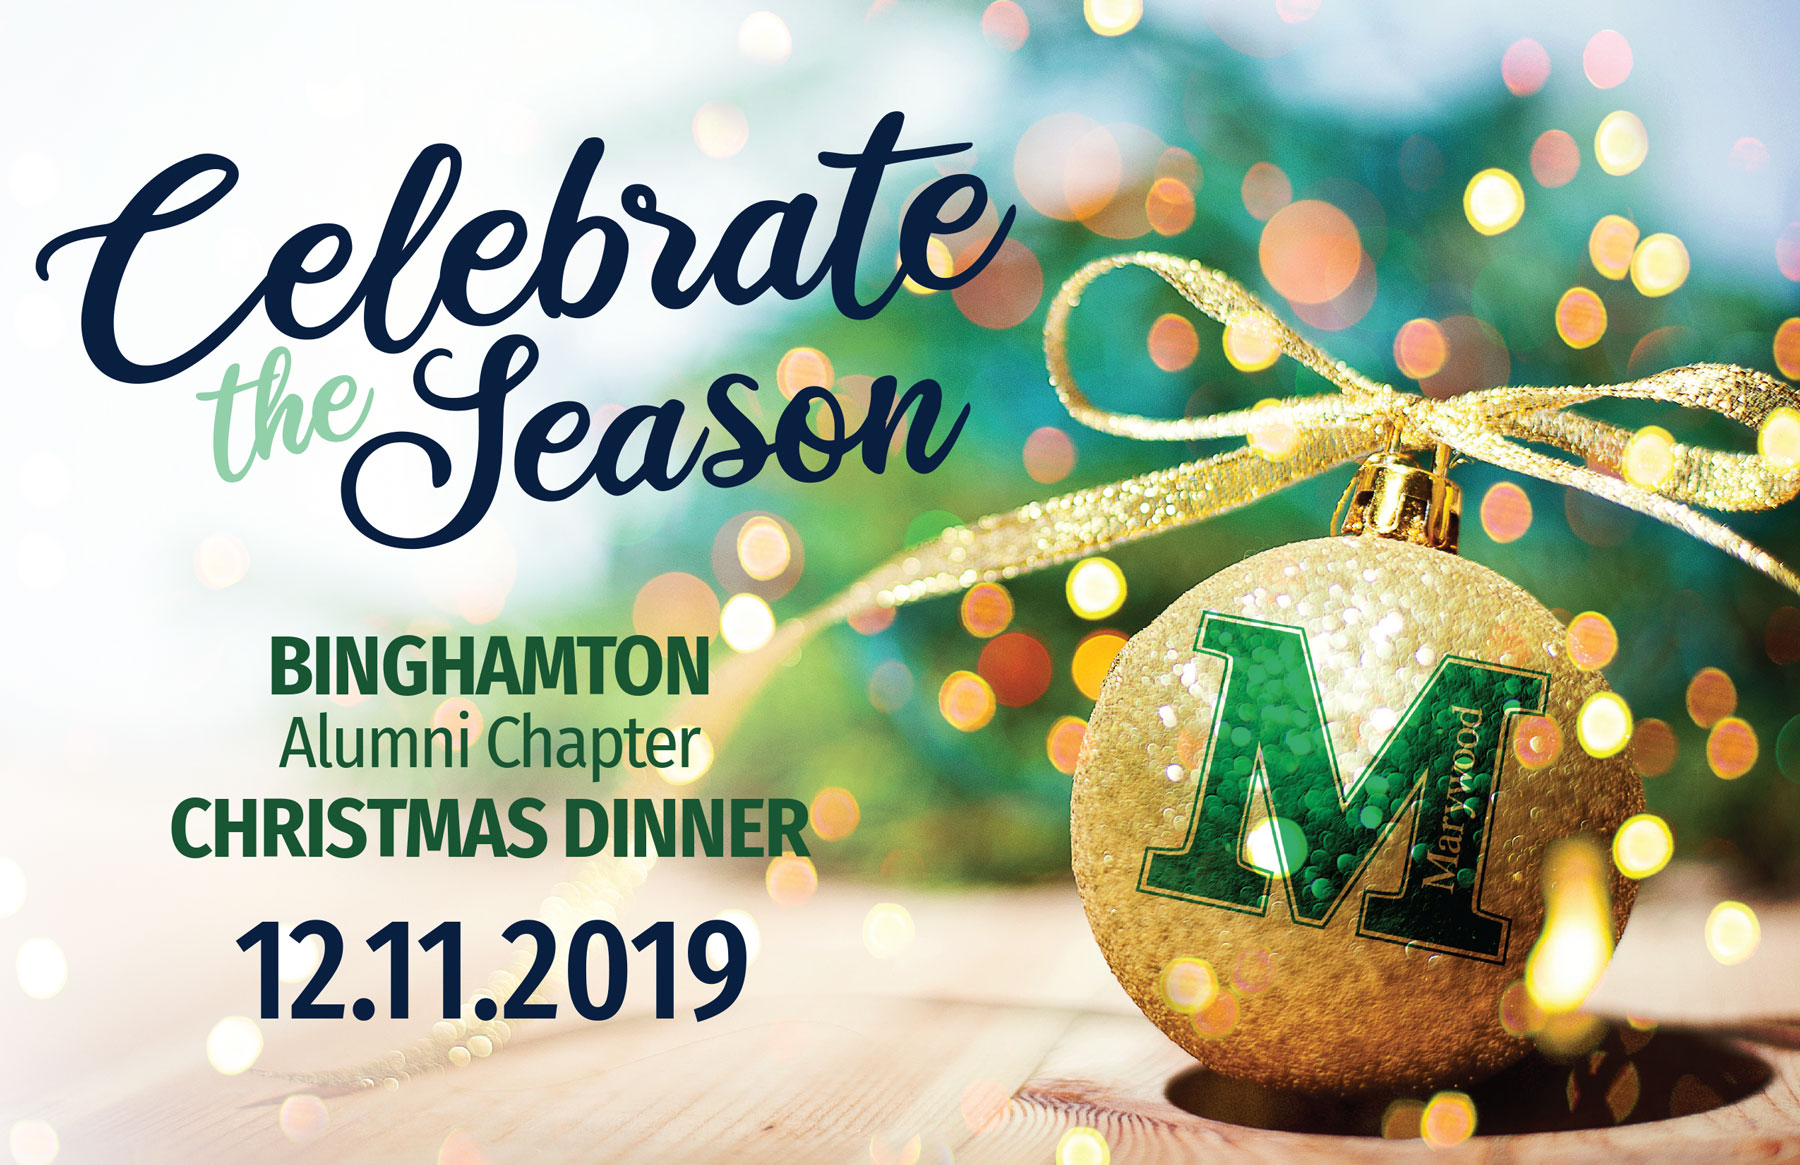 Binghamton Marywood Alumni Christmas Dinner - Thursday, December 11th at 6 p.m.